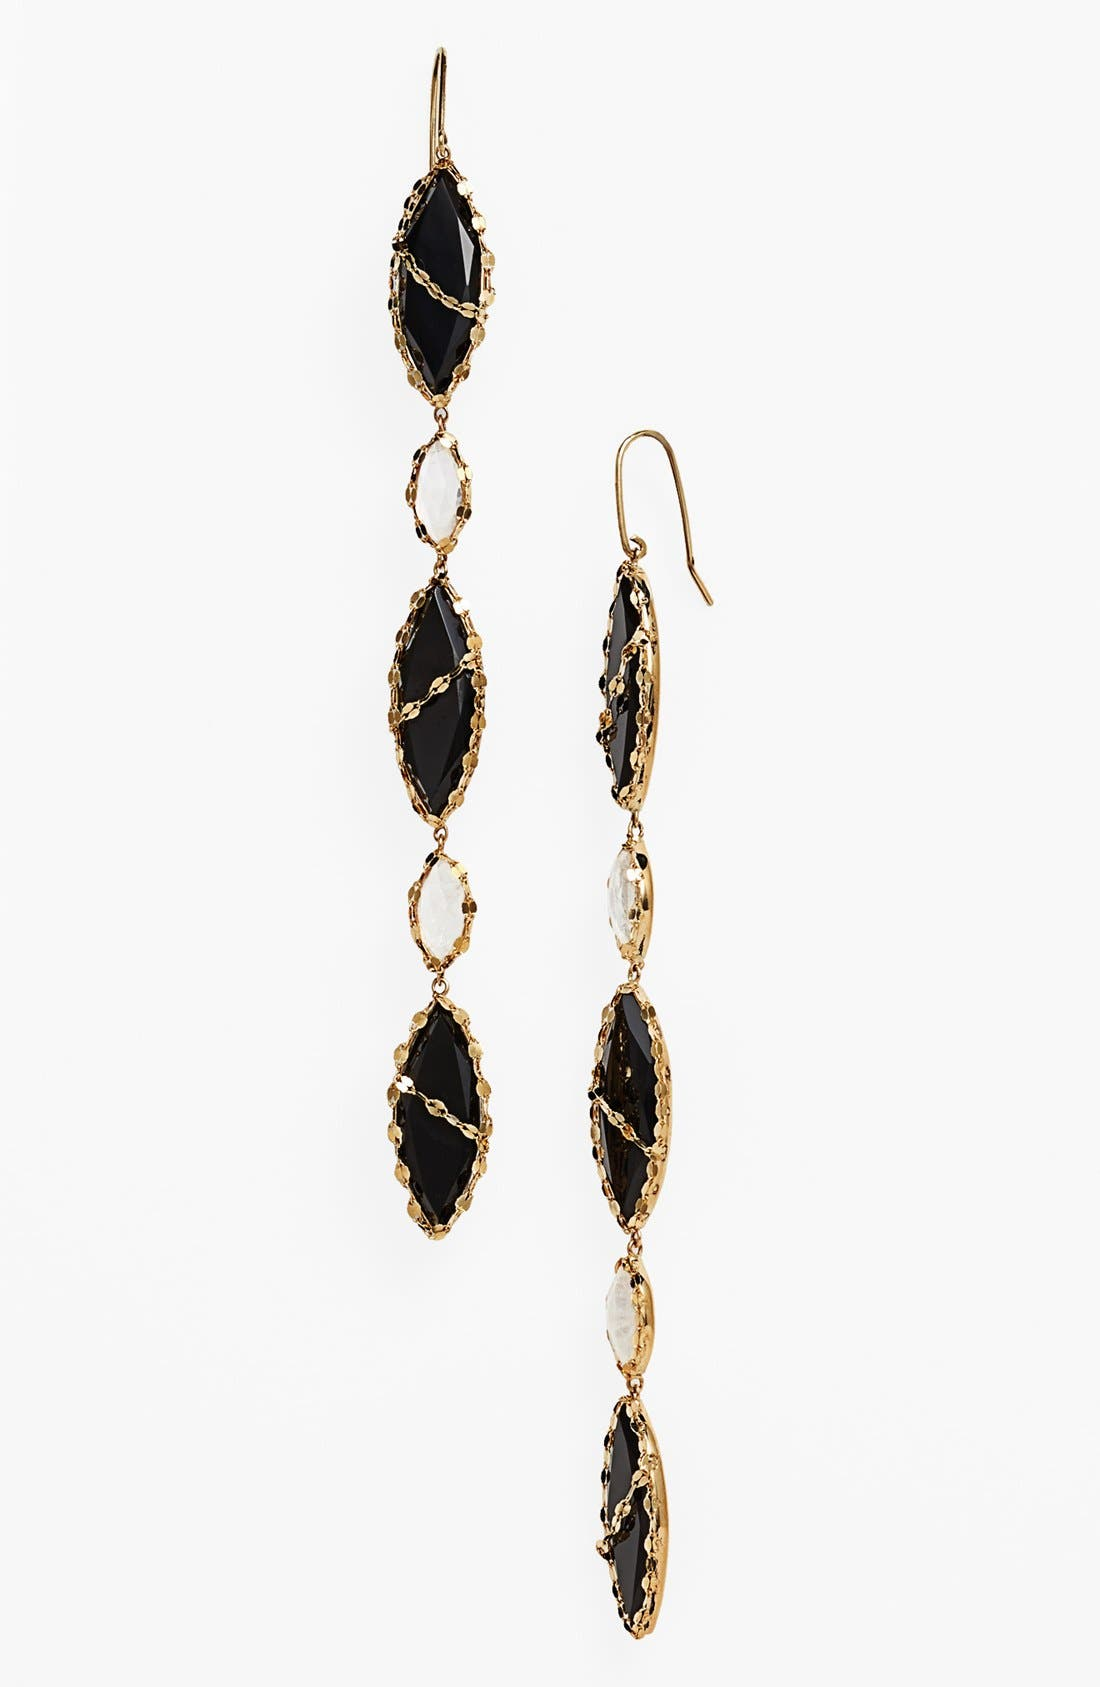 Alternate Image 1 Selected - Lana Jewelry 'Spellbound - Remix' Linear Earrings